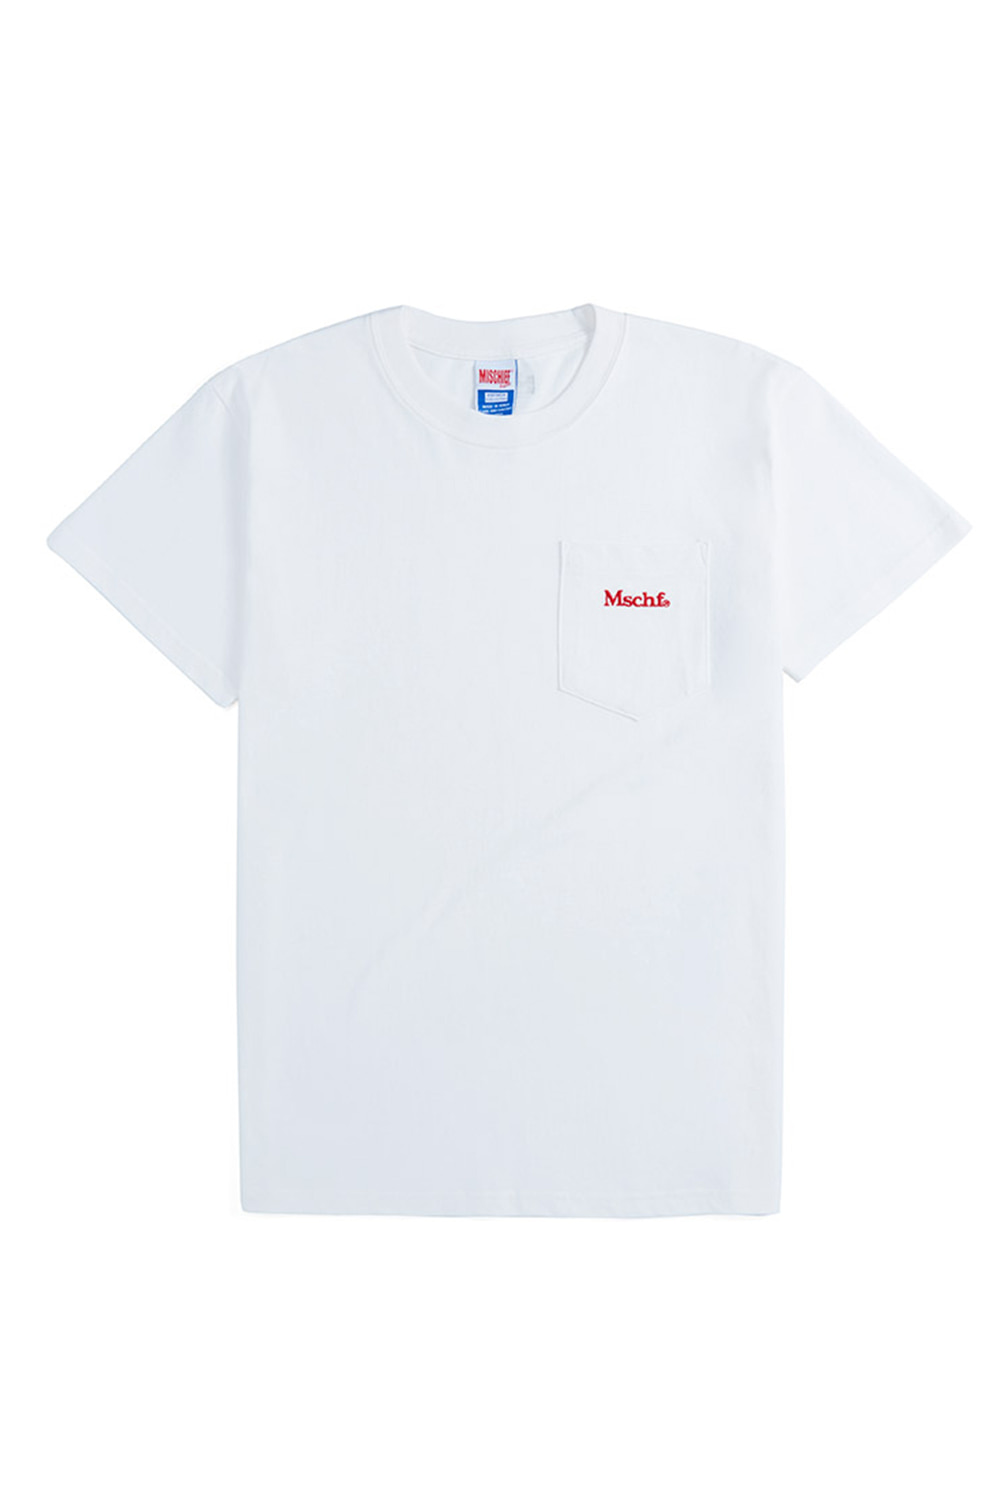 MSCHF_POCKET_white